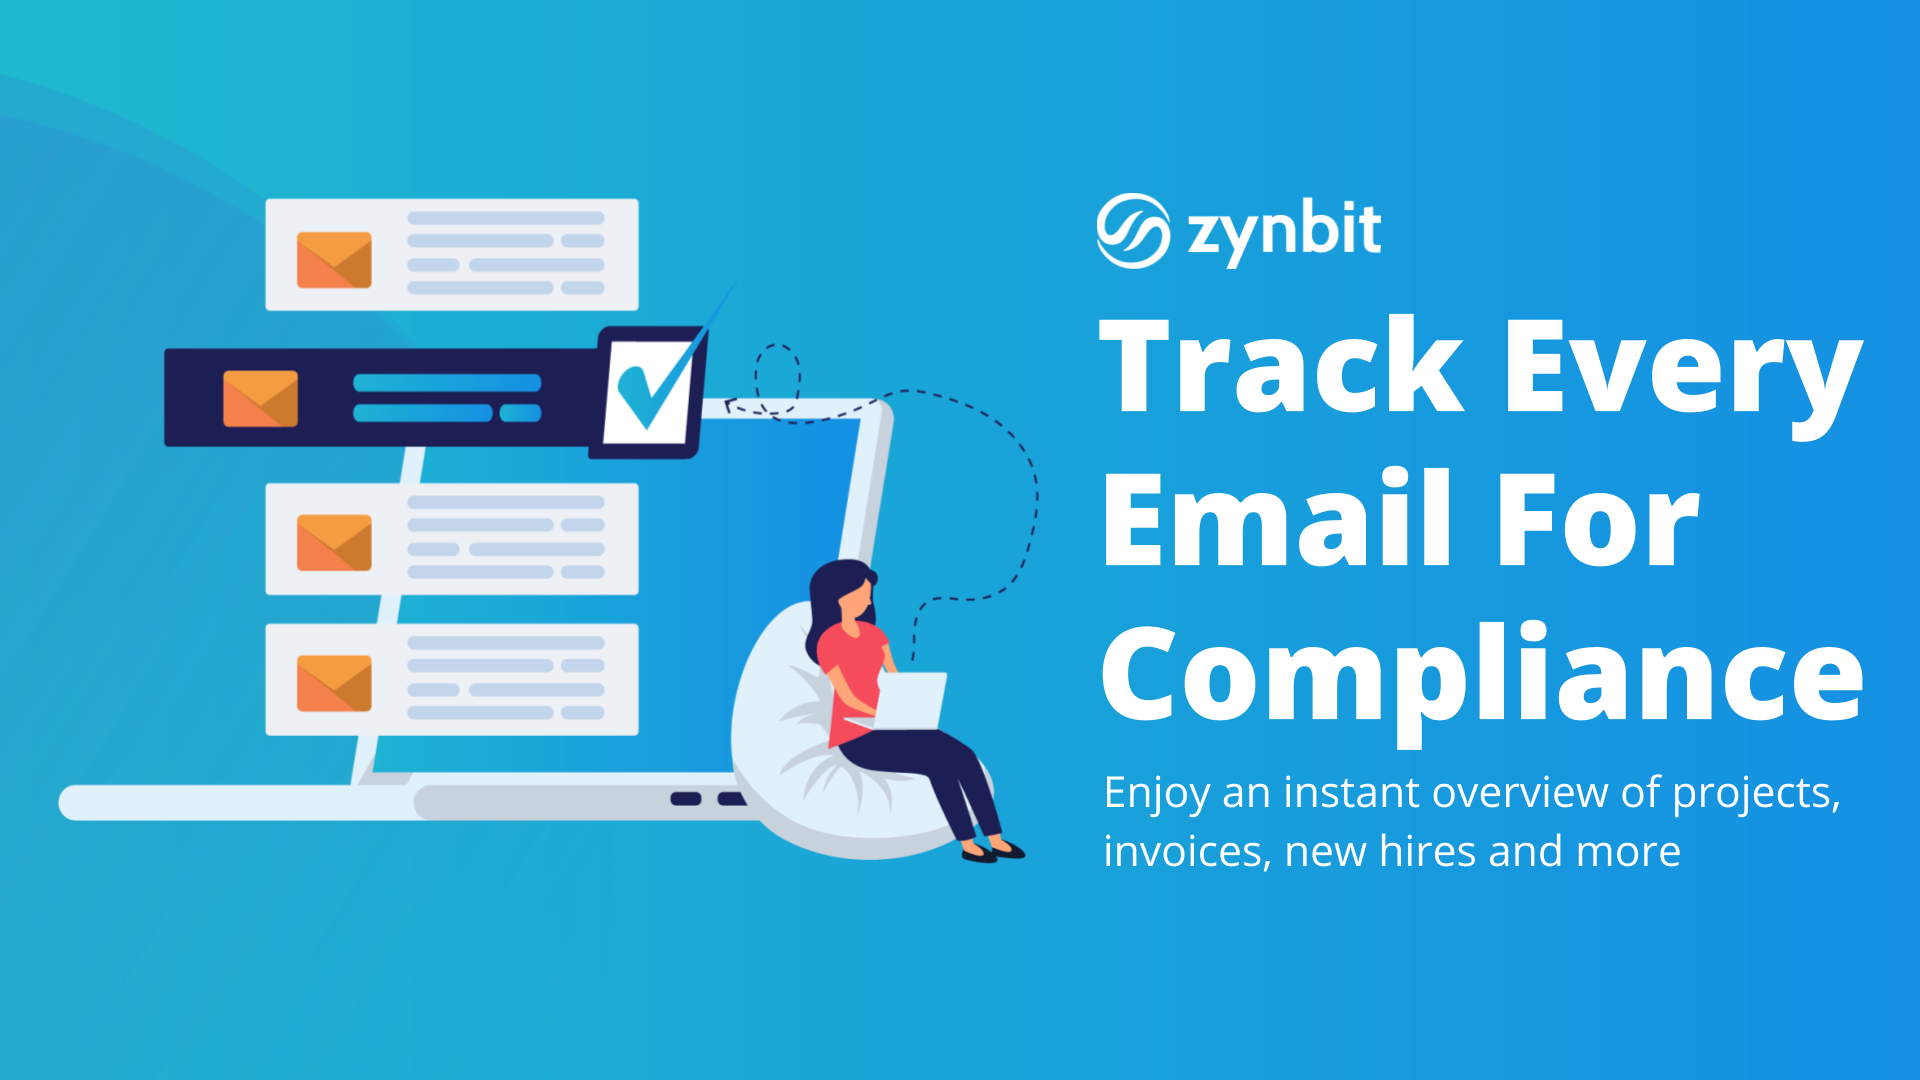 track-every-email-for-compliance